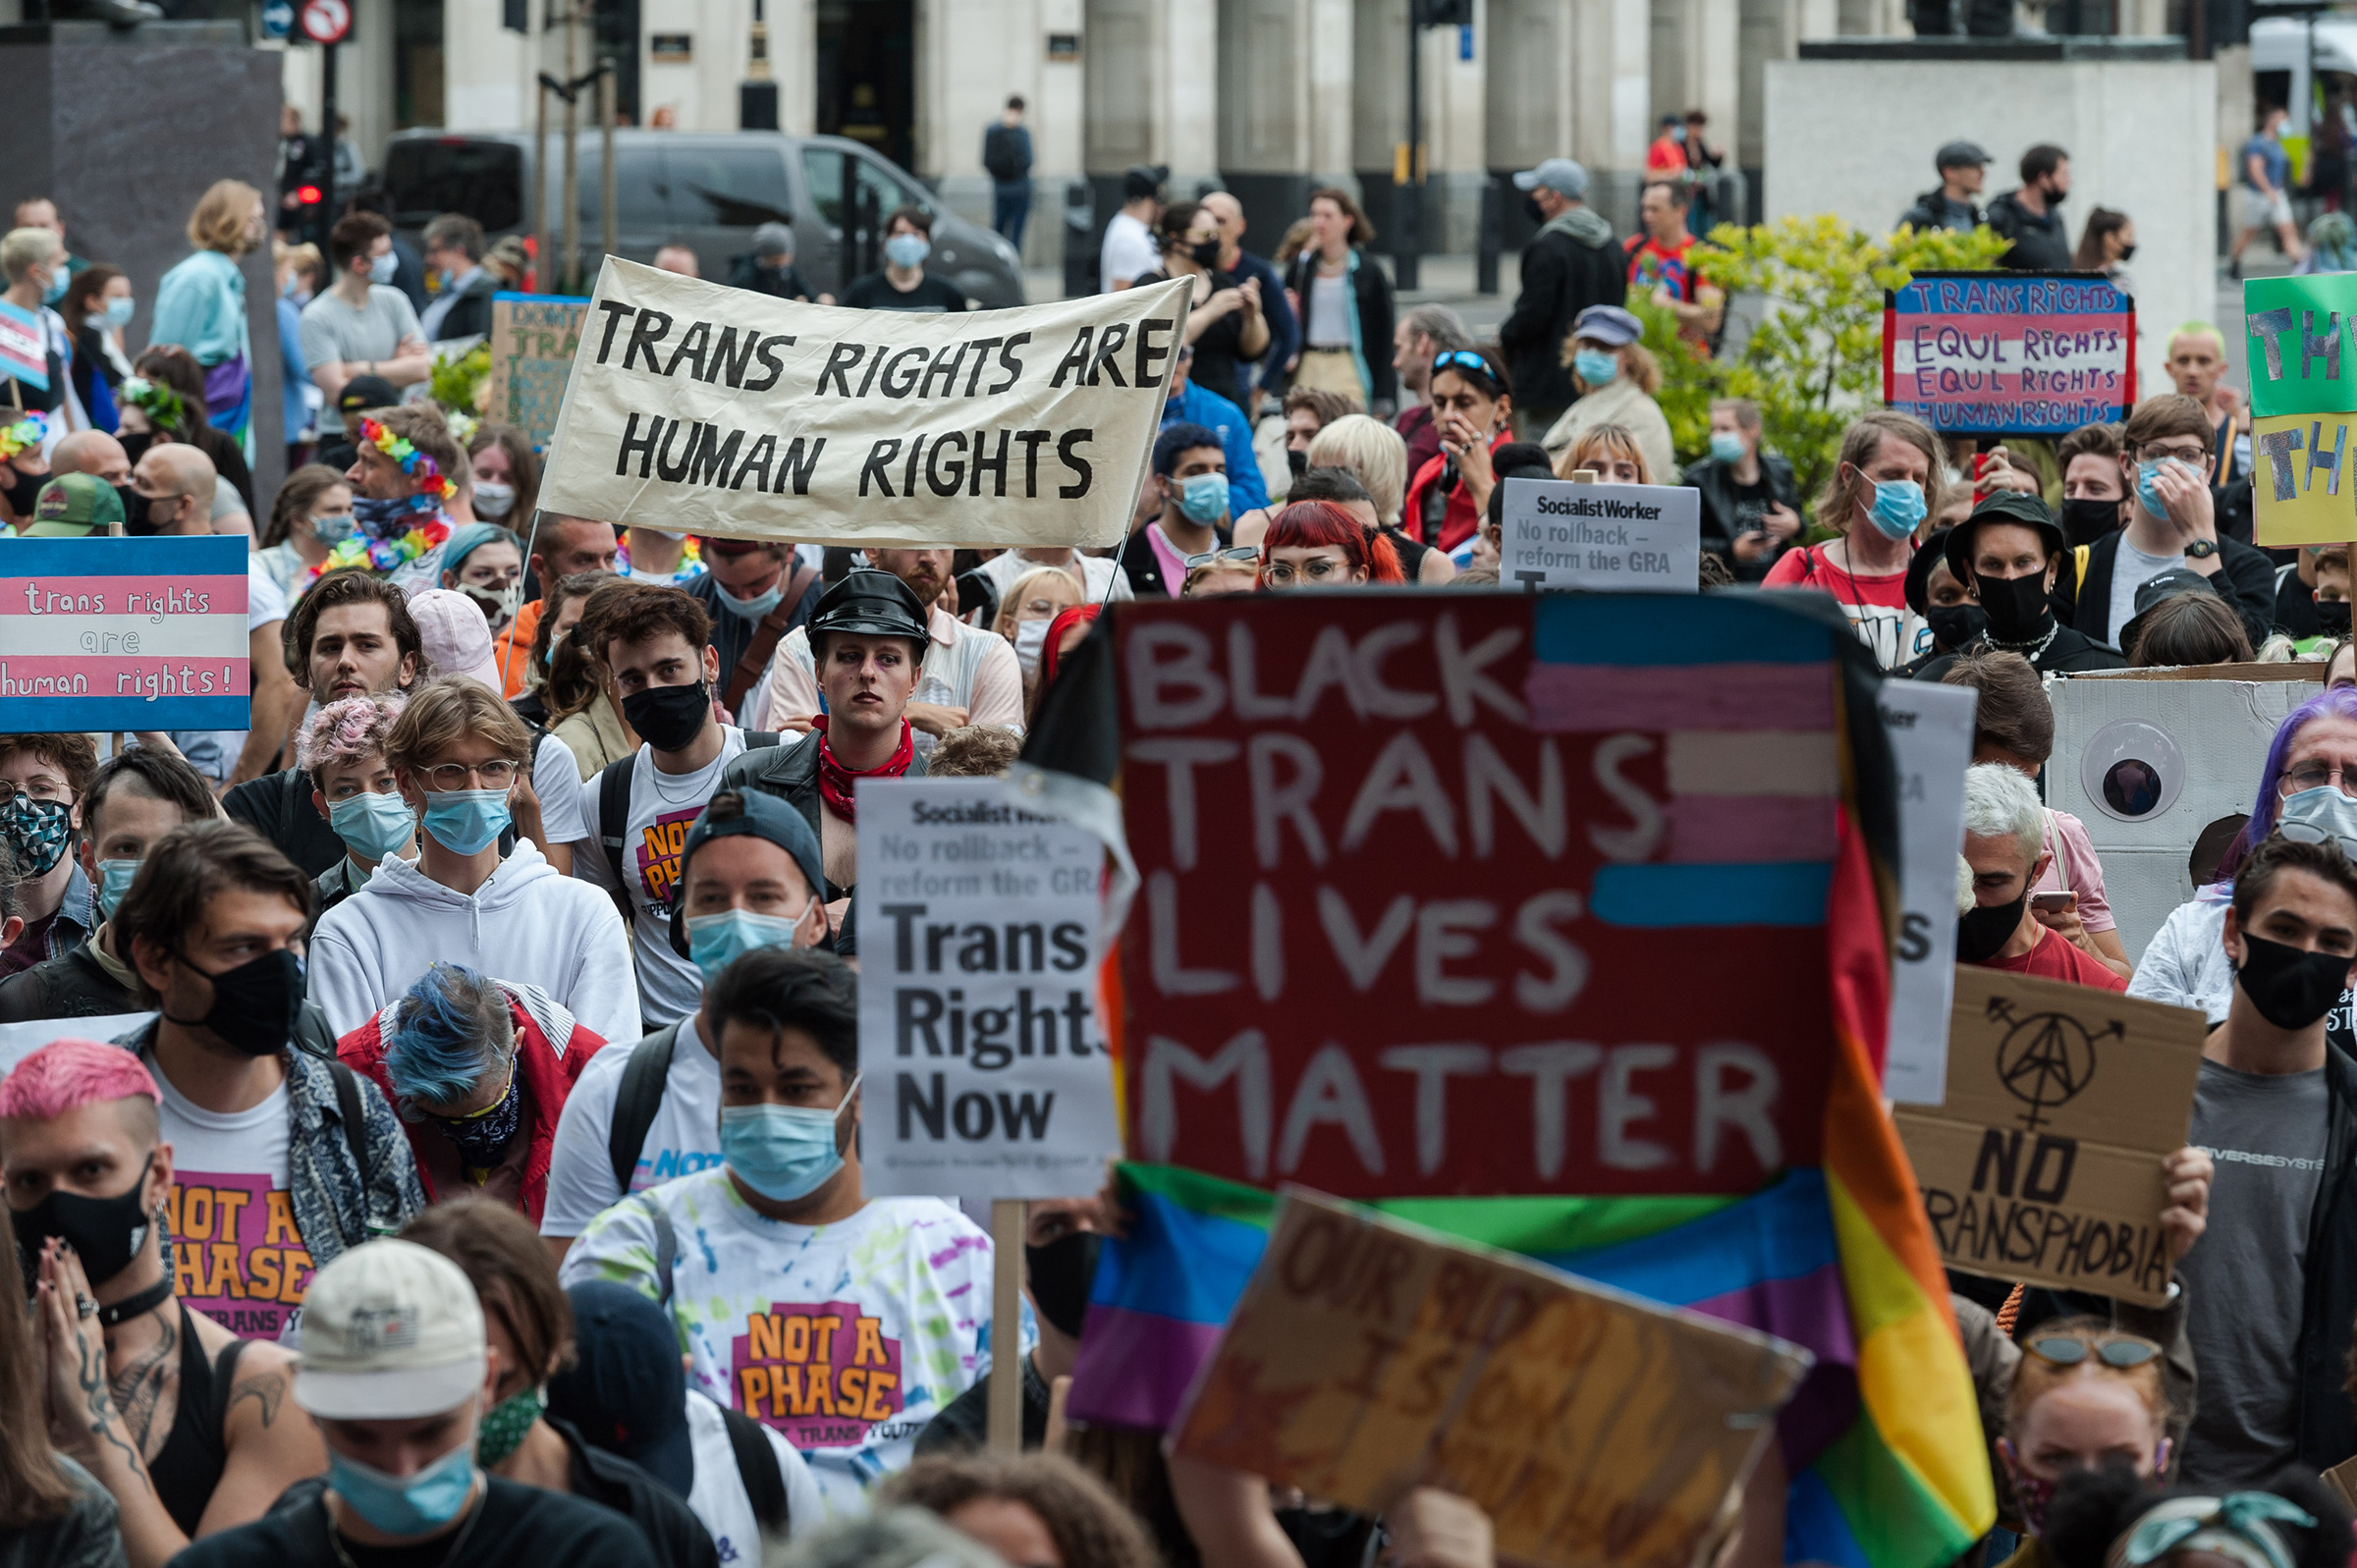 Fears of transgender people are a distraction from the real problems all face women